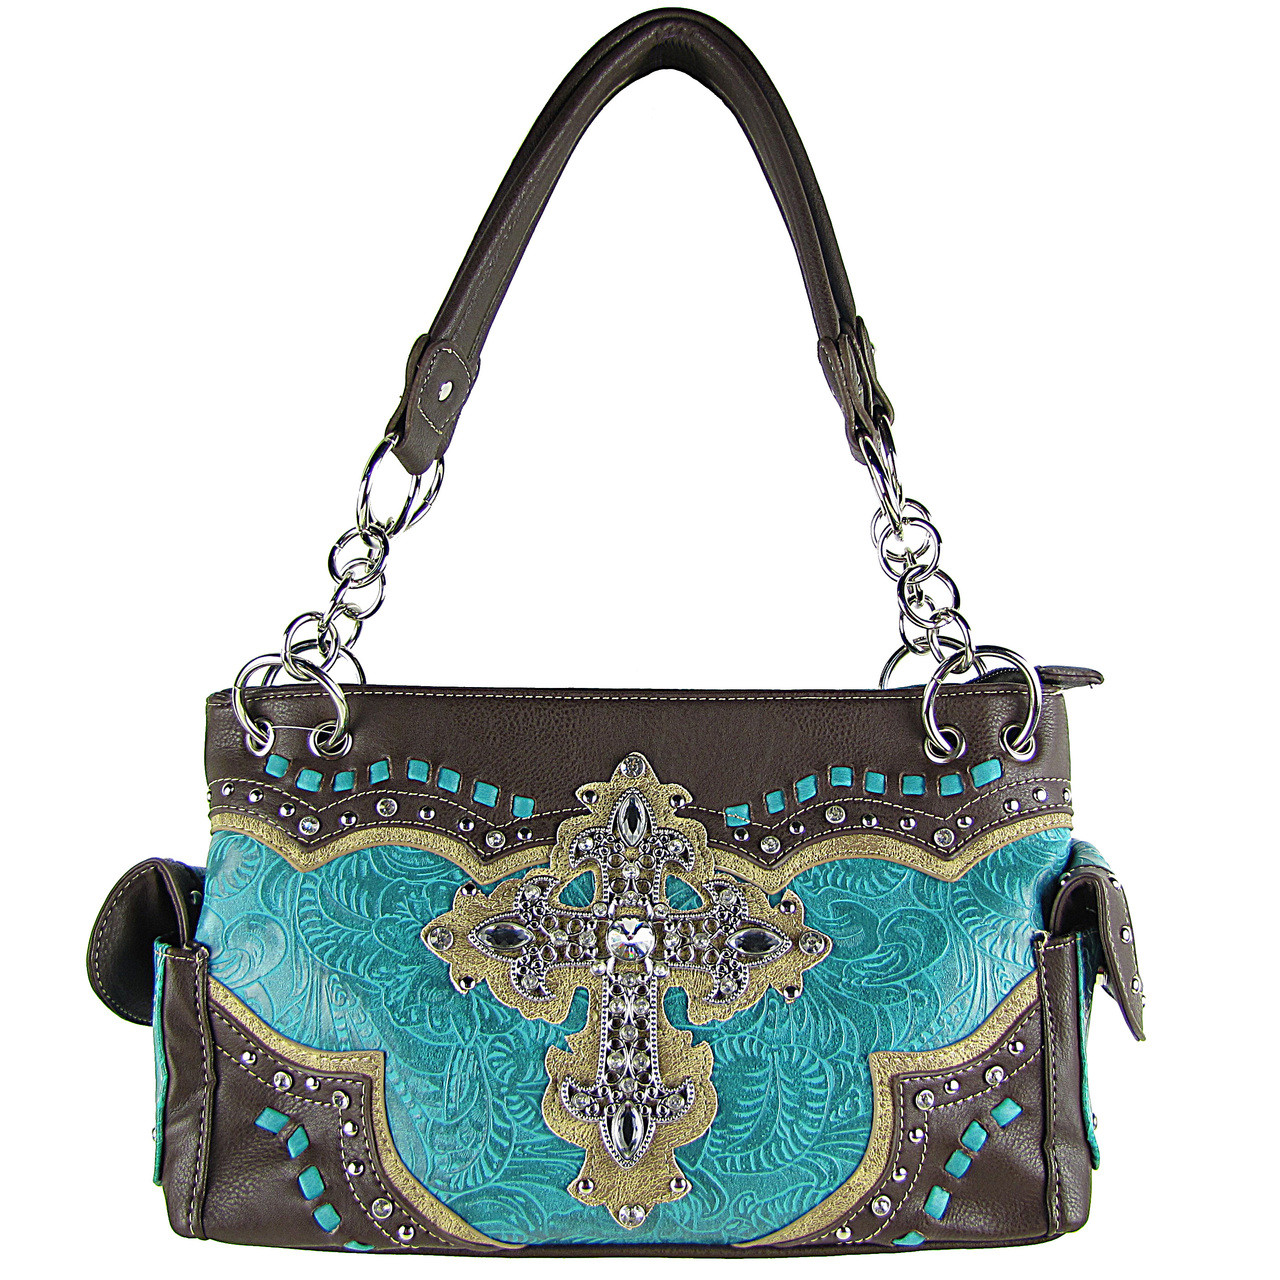 TURQUOISE WESTERN RHINESTONE CROSS LOOK SHOULDER HANDBAG HB1-34LCRTRQ